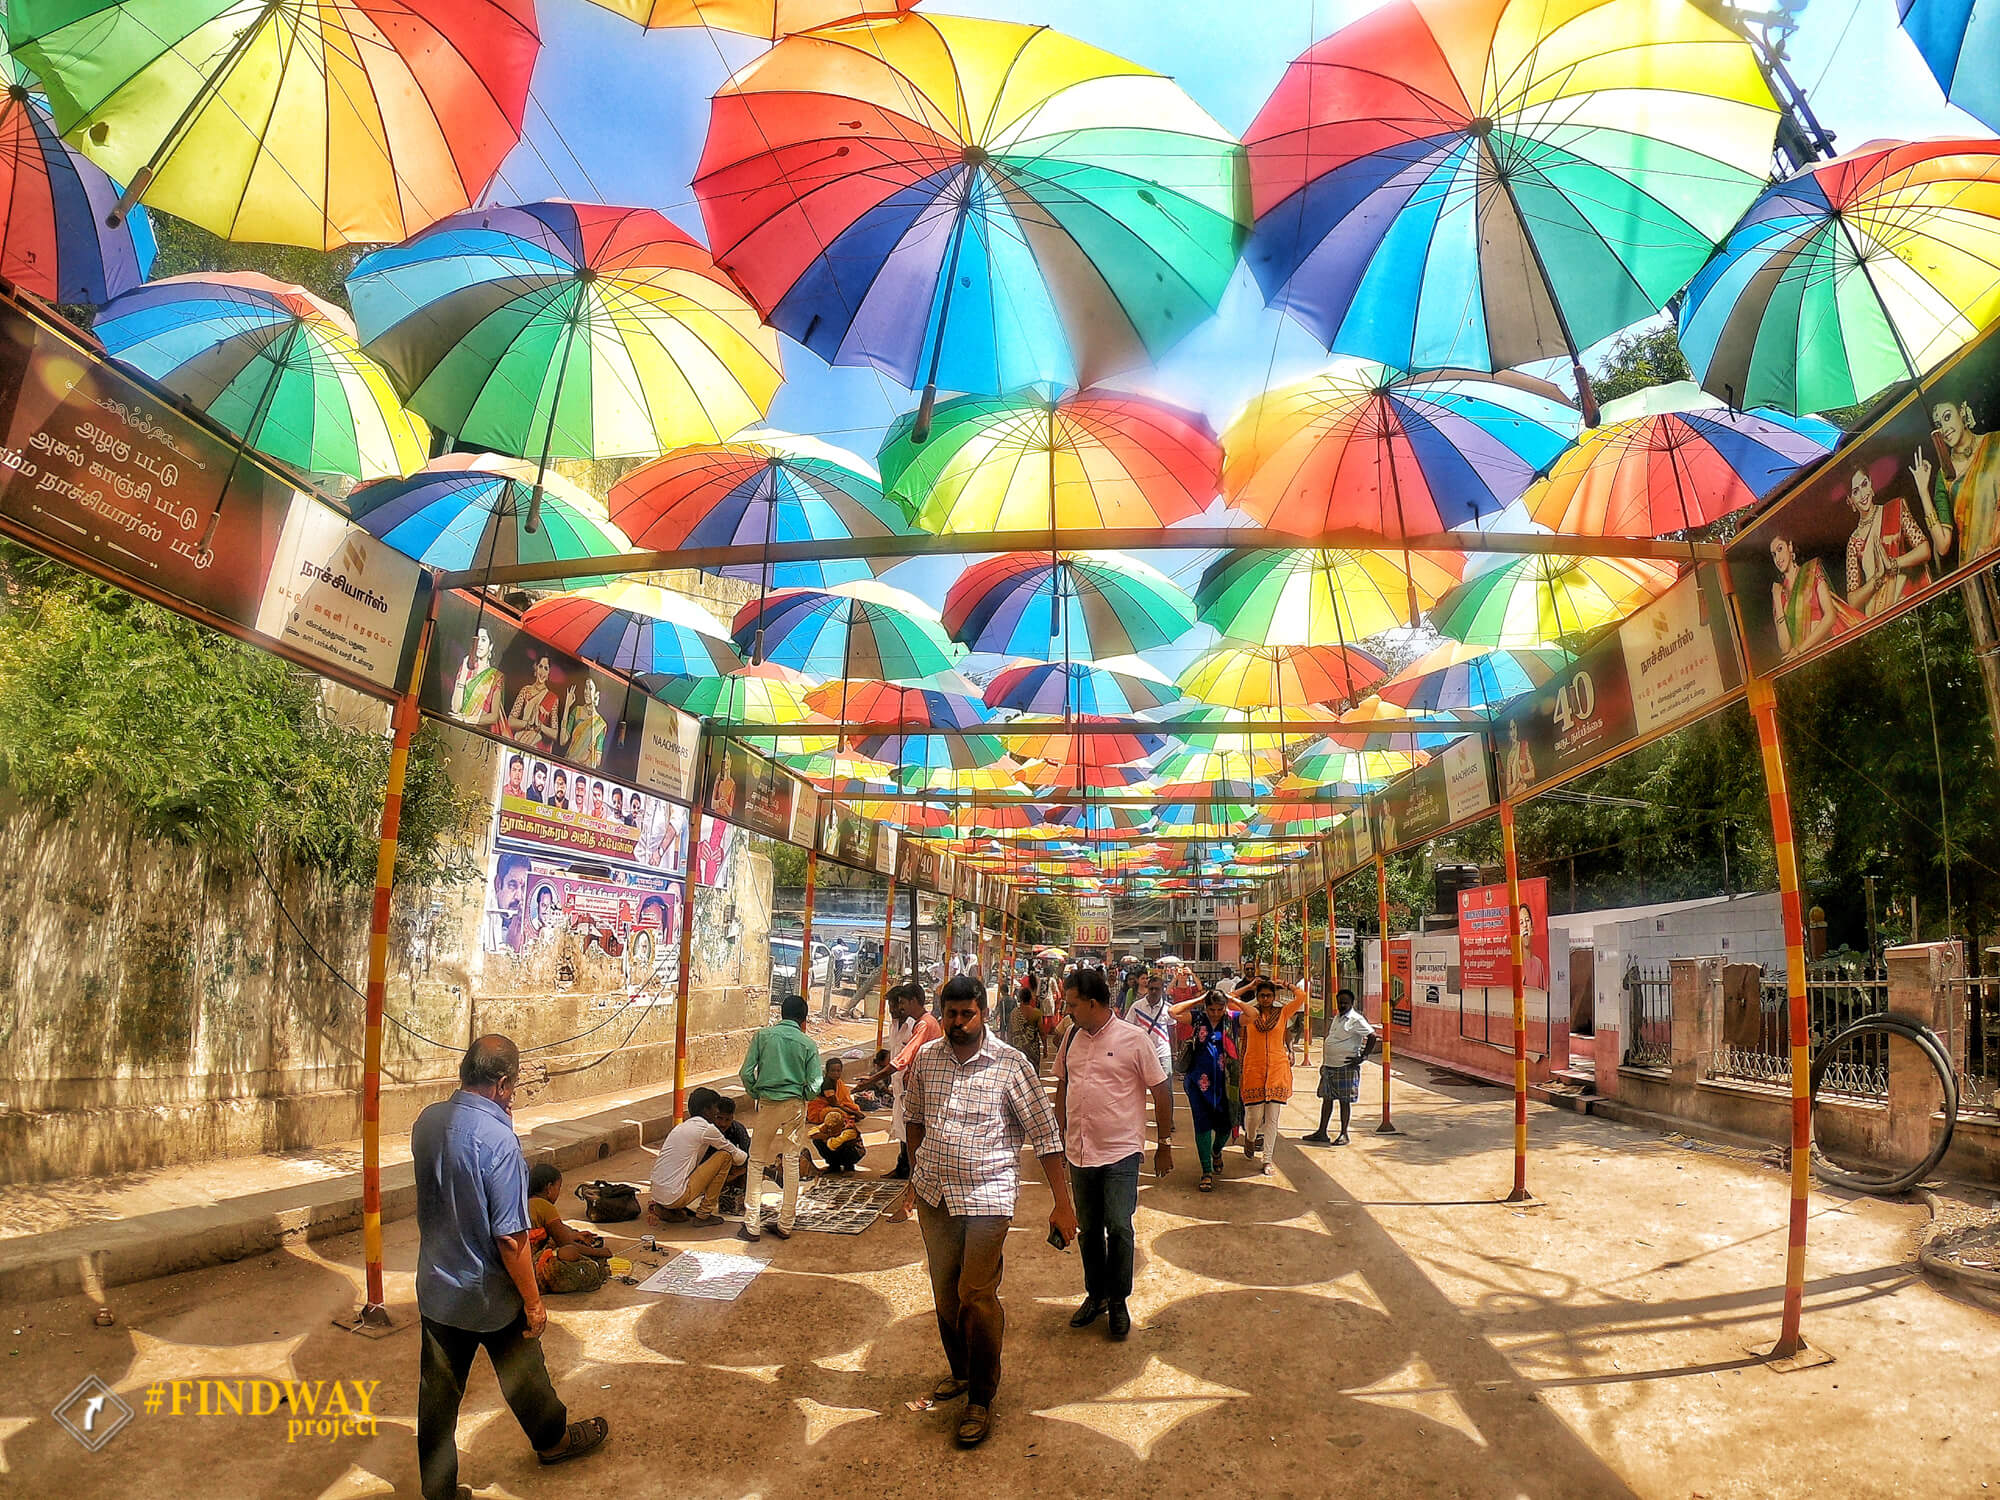 madurai streets temple ambrella travel blog findway ua